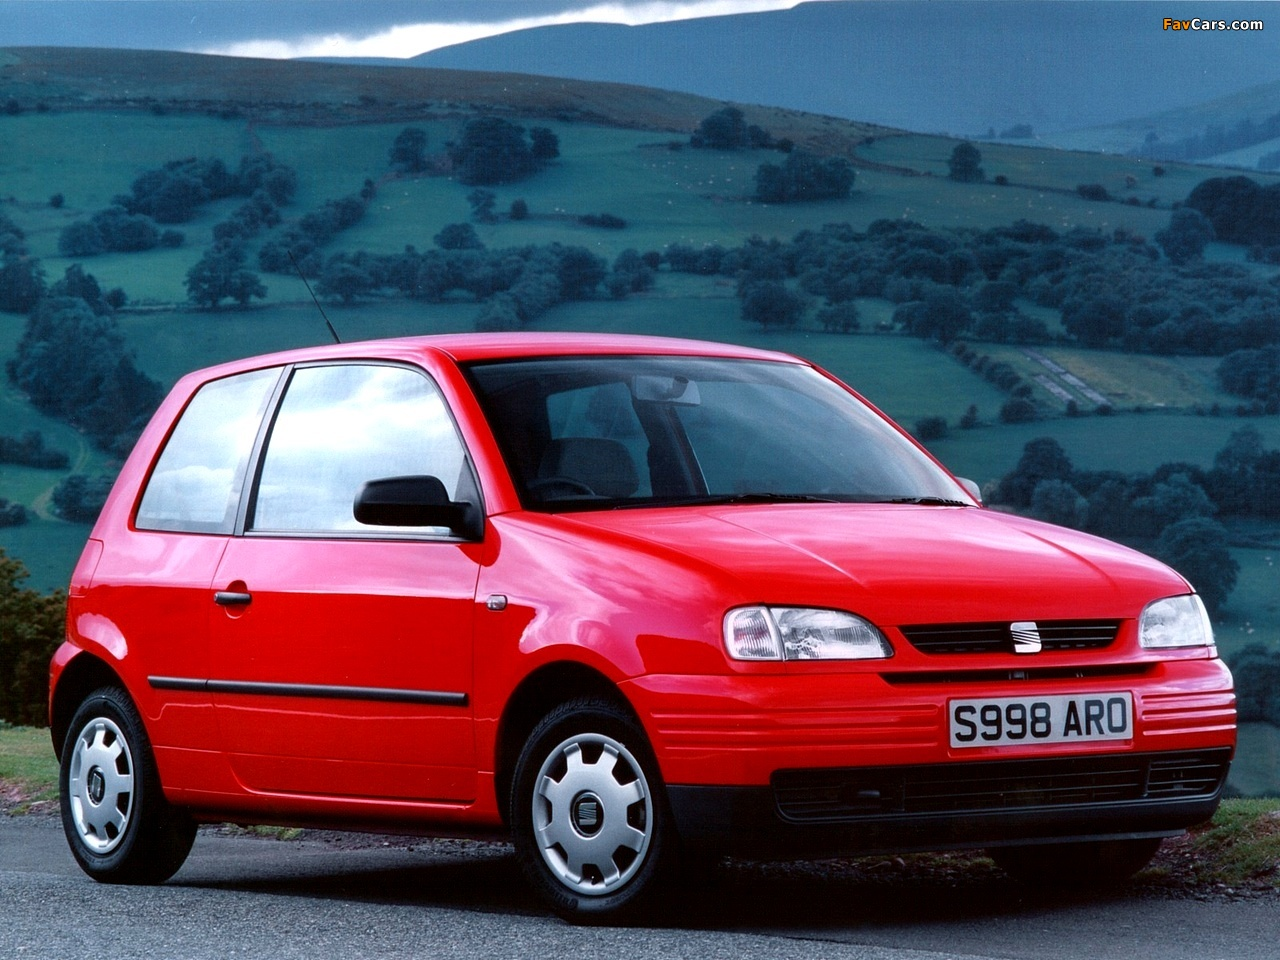 seat arosa uk spec 1997 2000 photos 1280x960. Black Bedroom Furniture Sets. Home Design Ideas